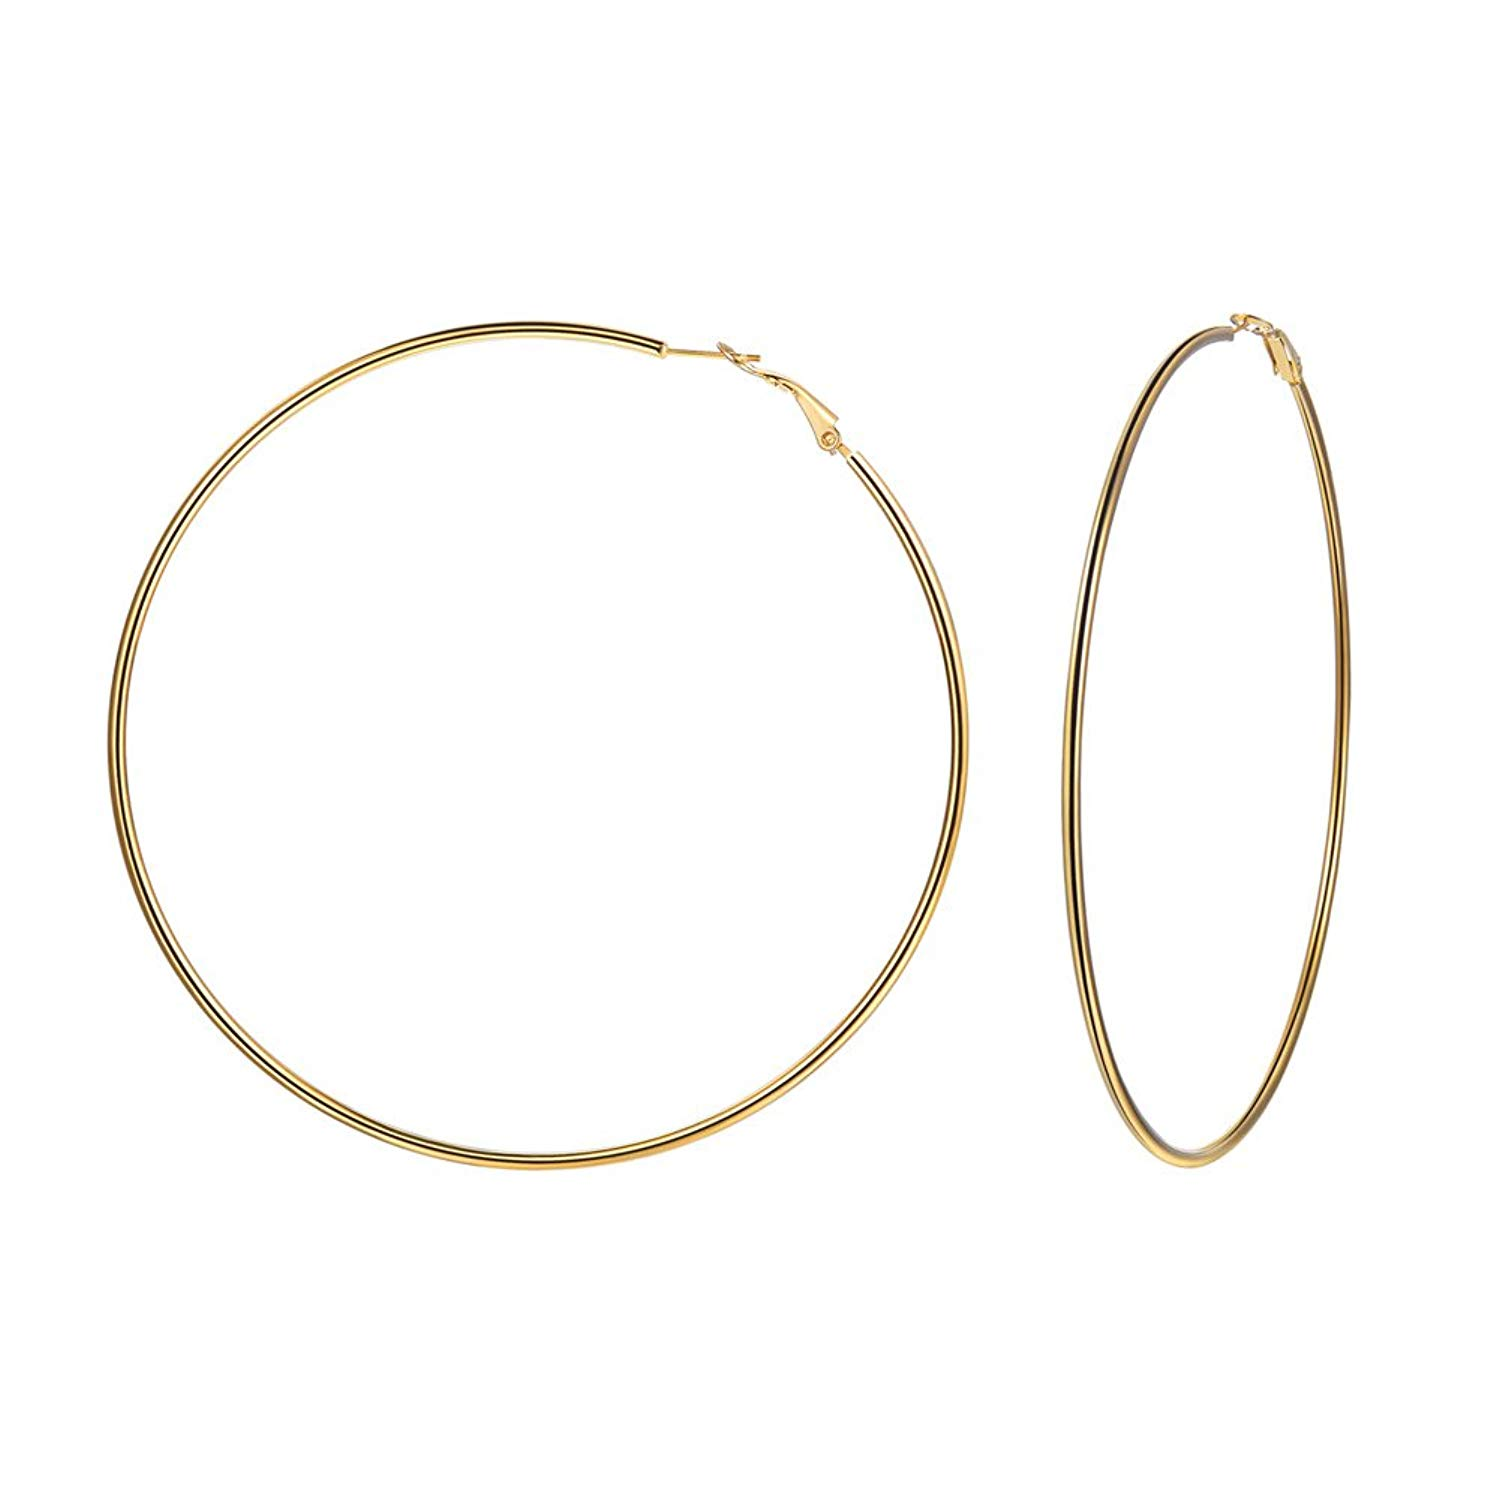 a611f54b8 Get Quotations · U7 Hoop Earrings for Women Stainless Steel/Black Gun  Plated/18K Gold Plated Size